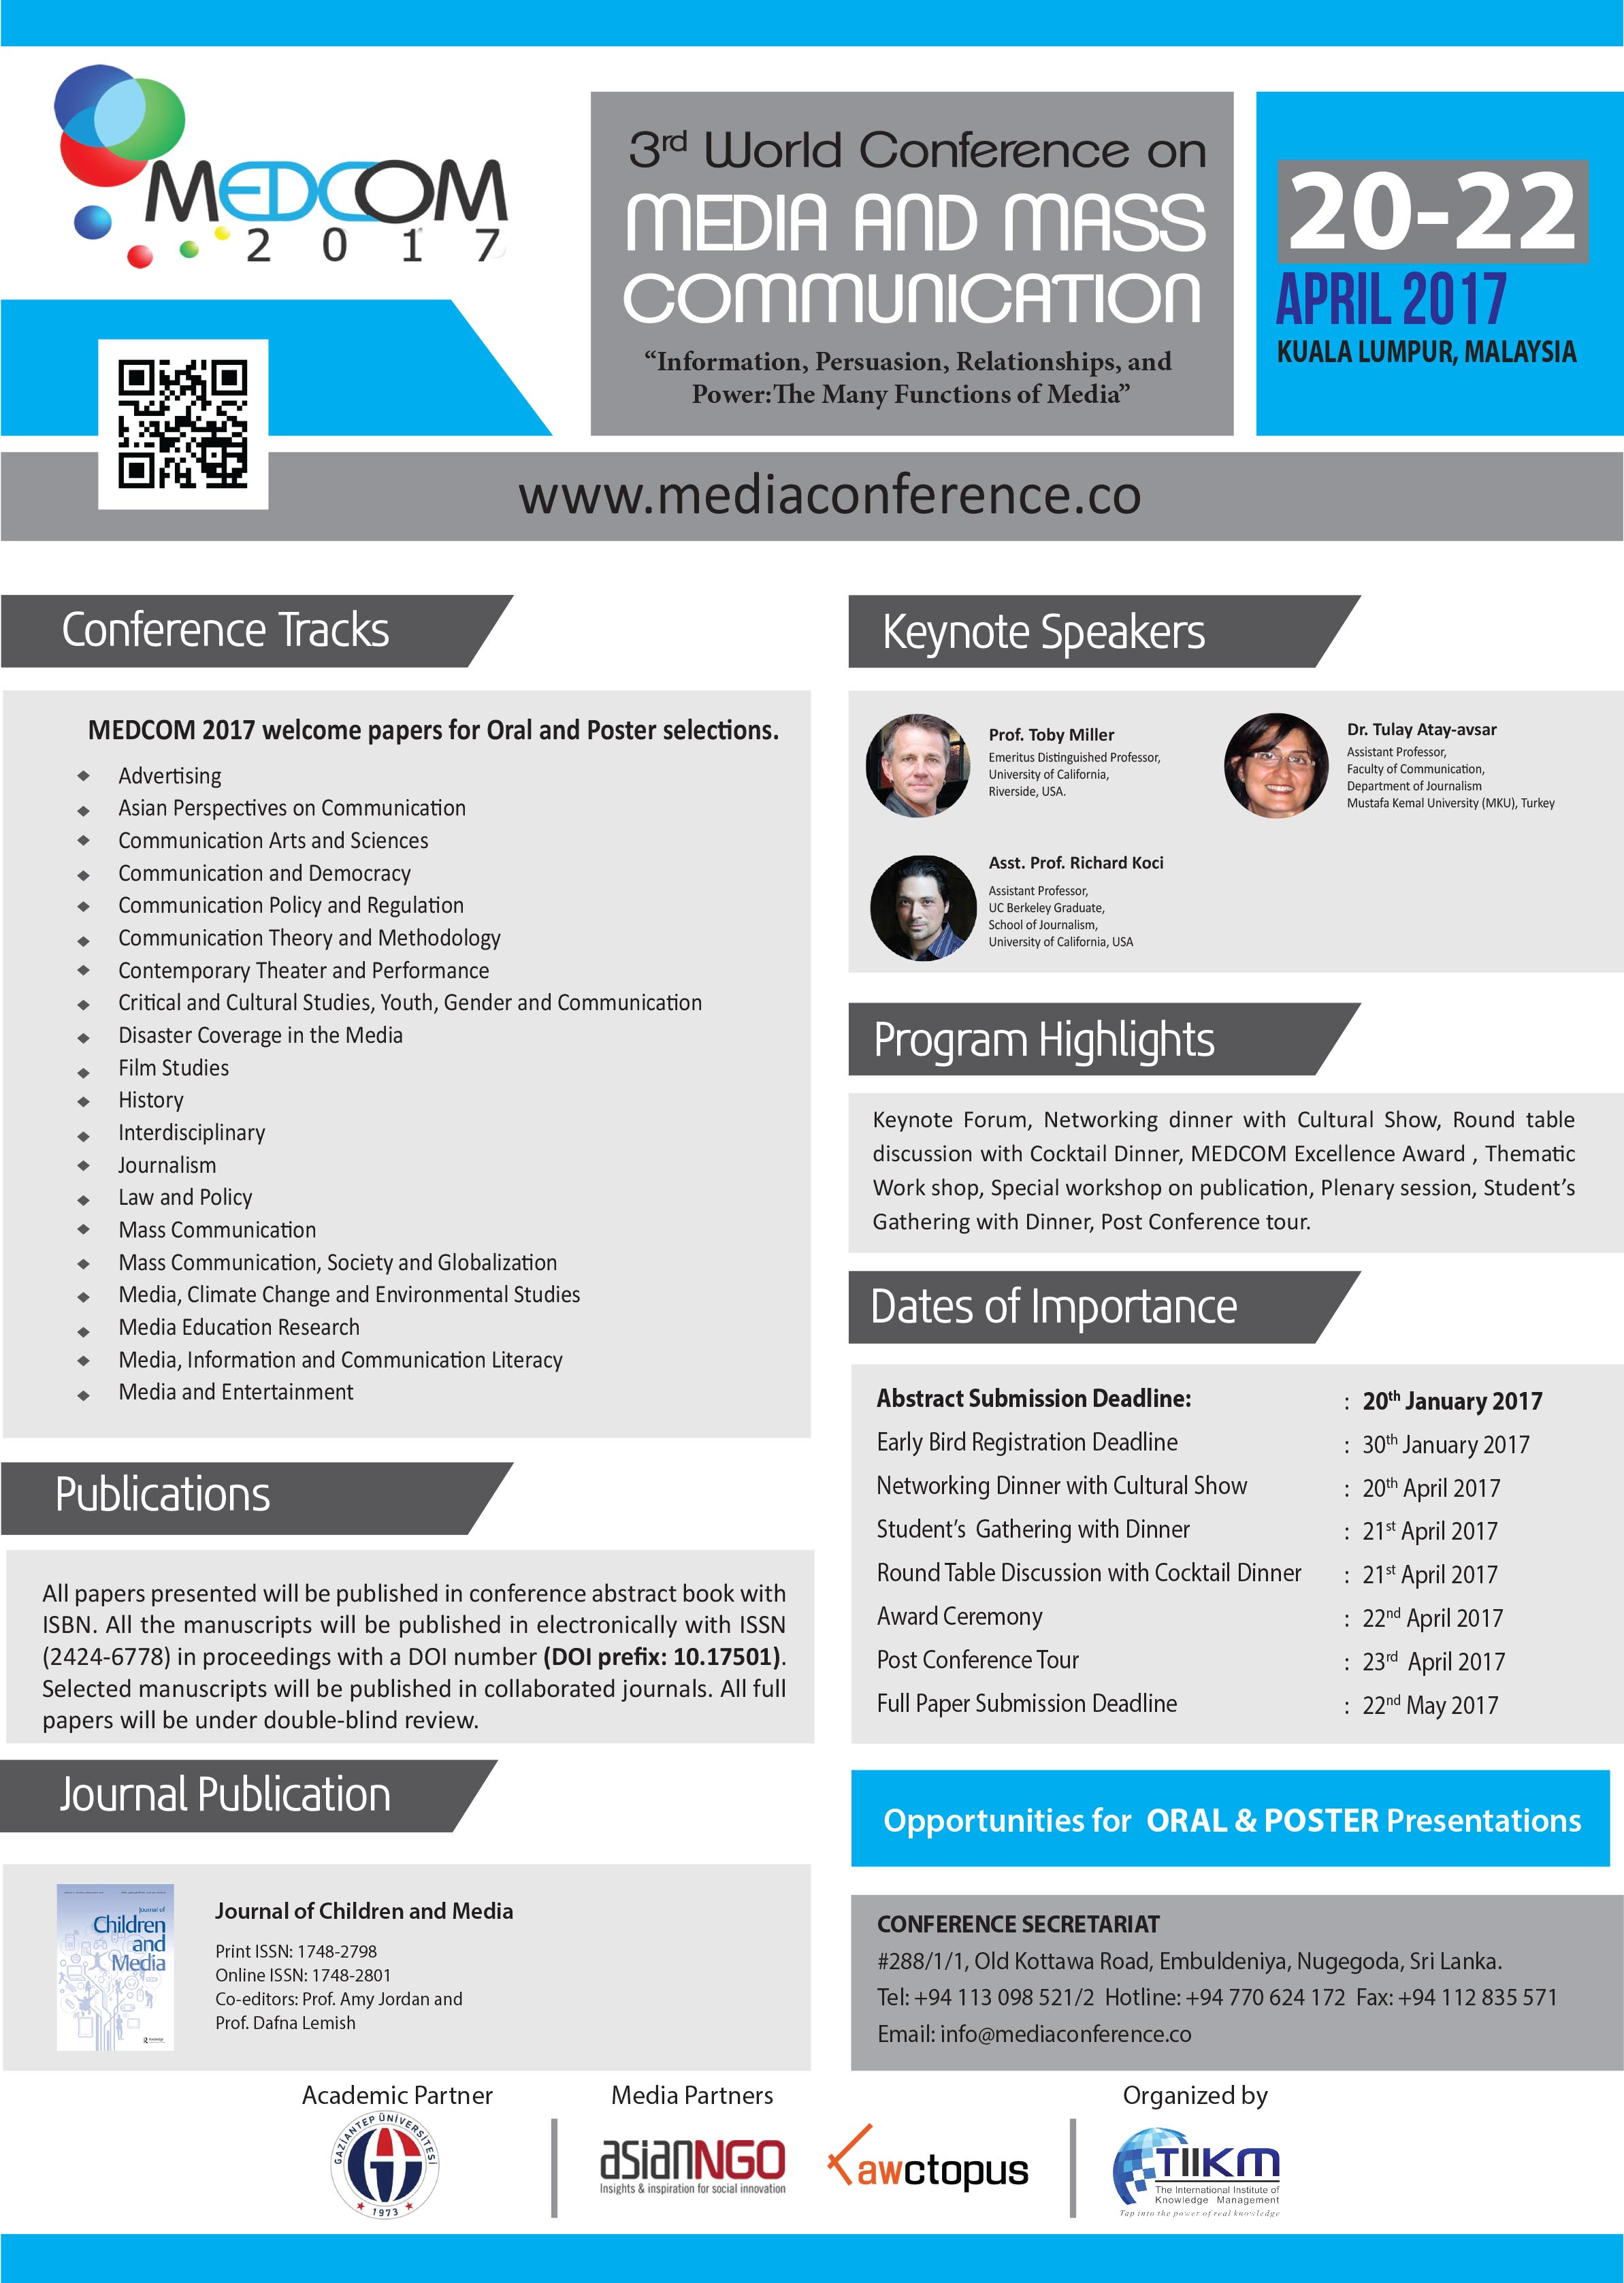 3rd World conference on Media and Mass Communication [Medcom]